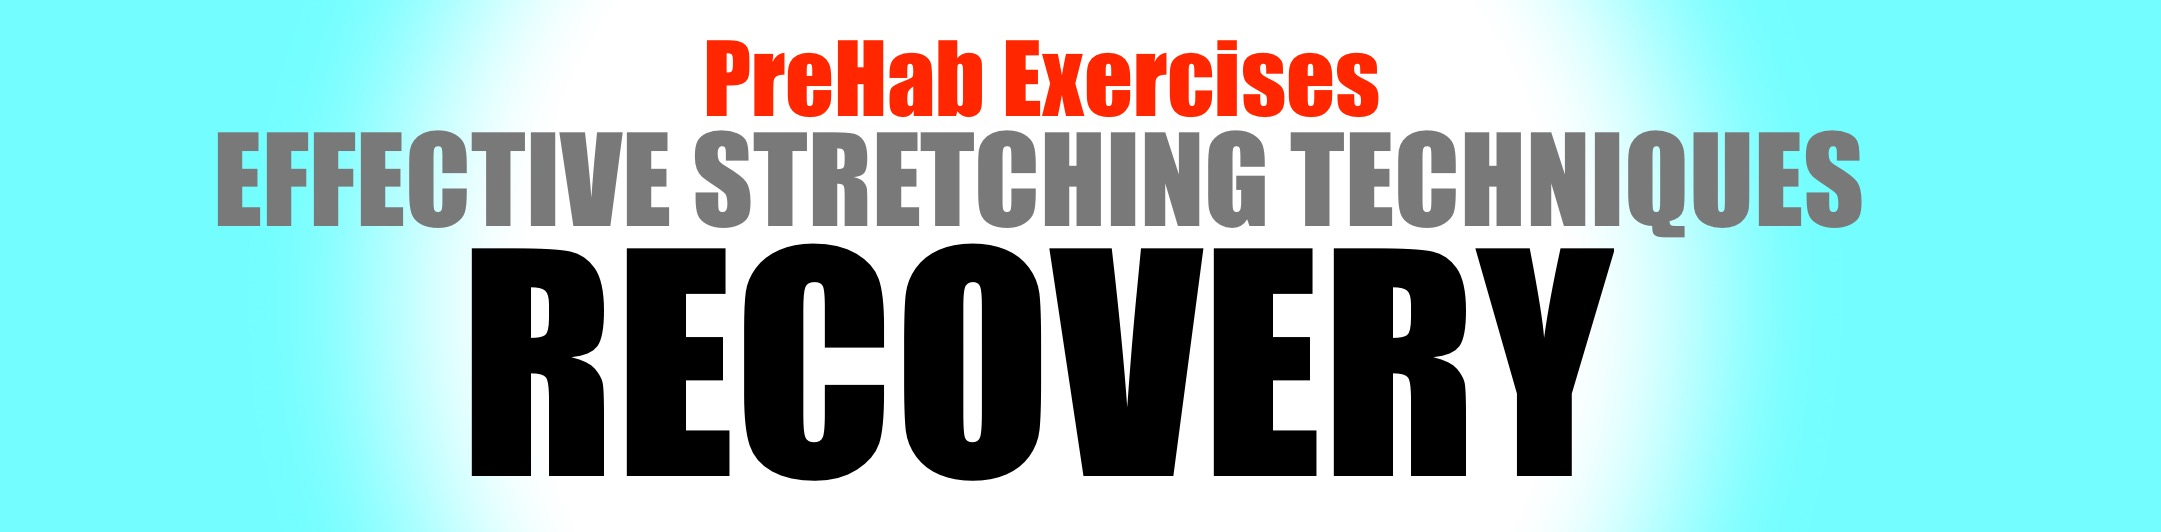 PreHab Exercises - Effective Stretching for Recovery